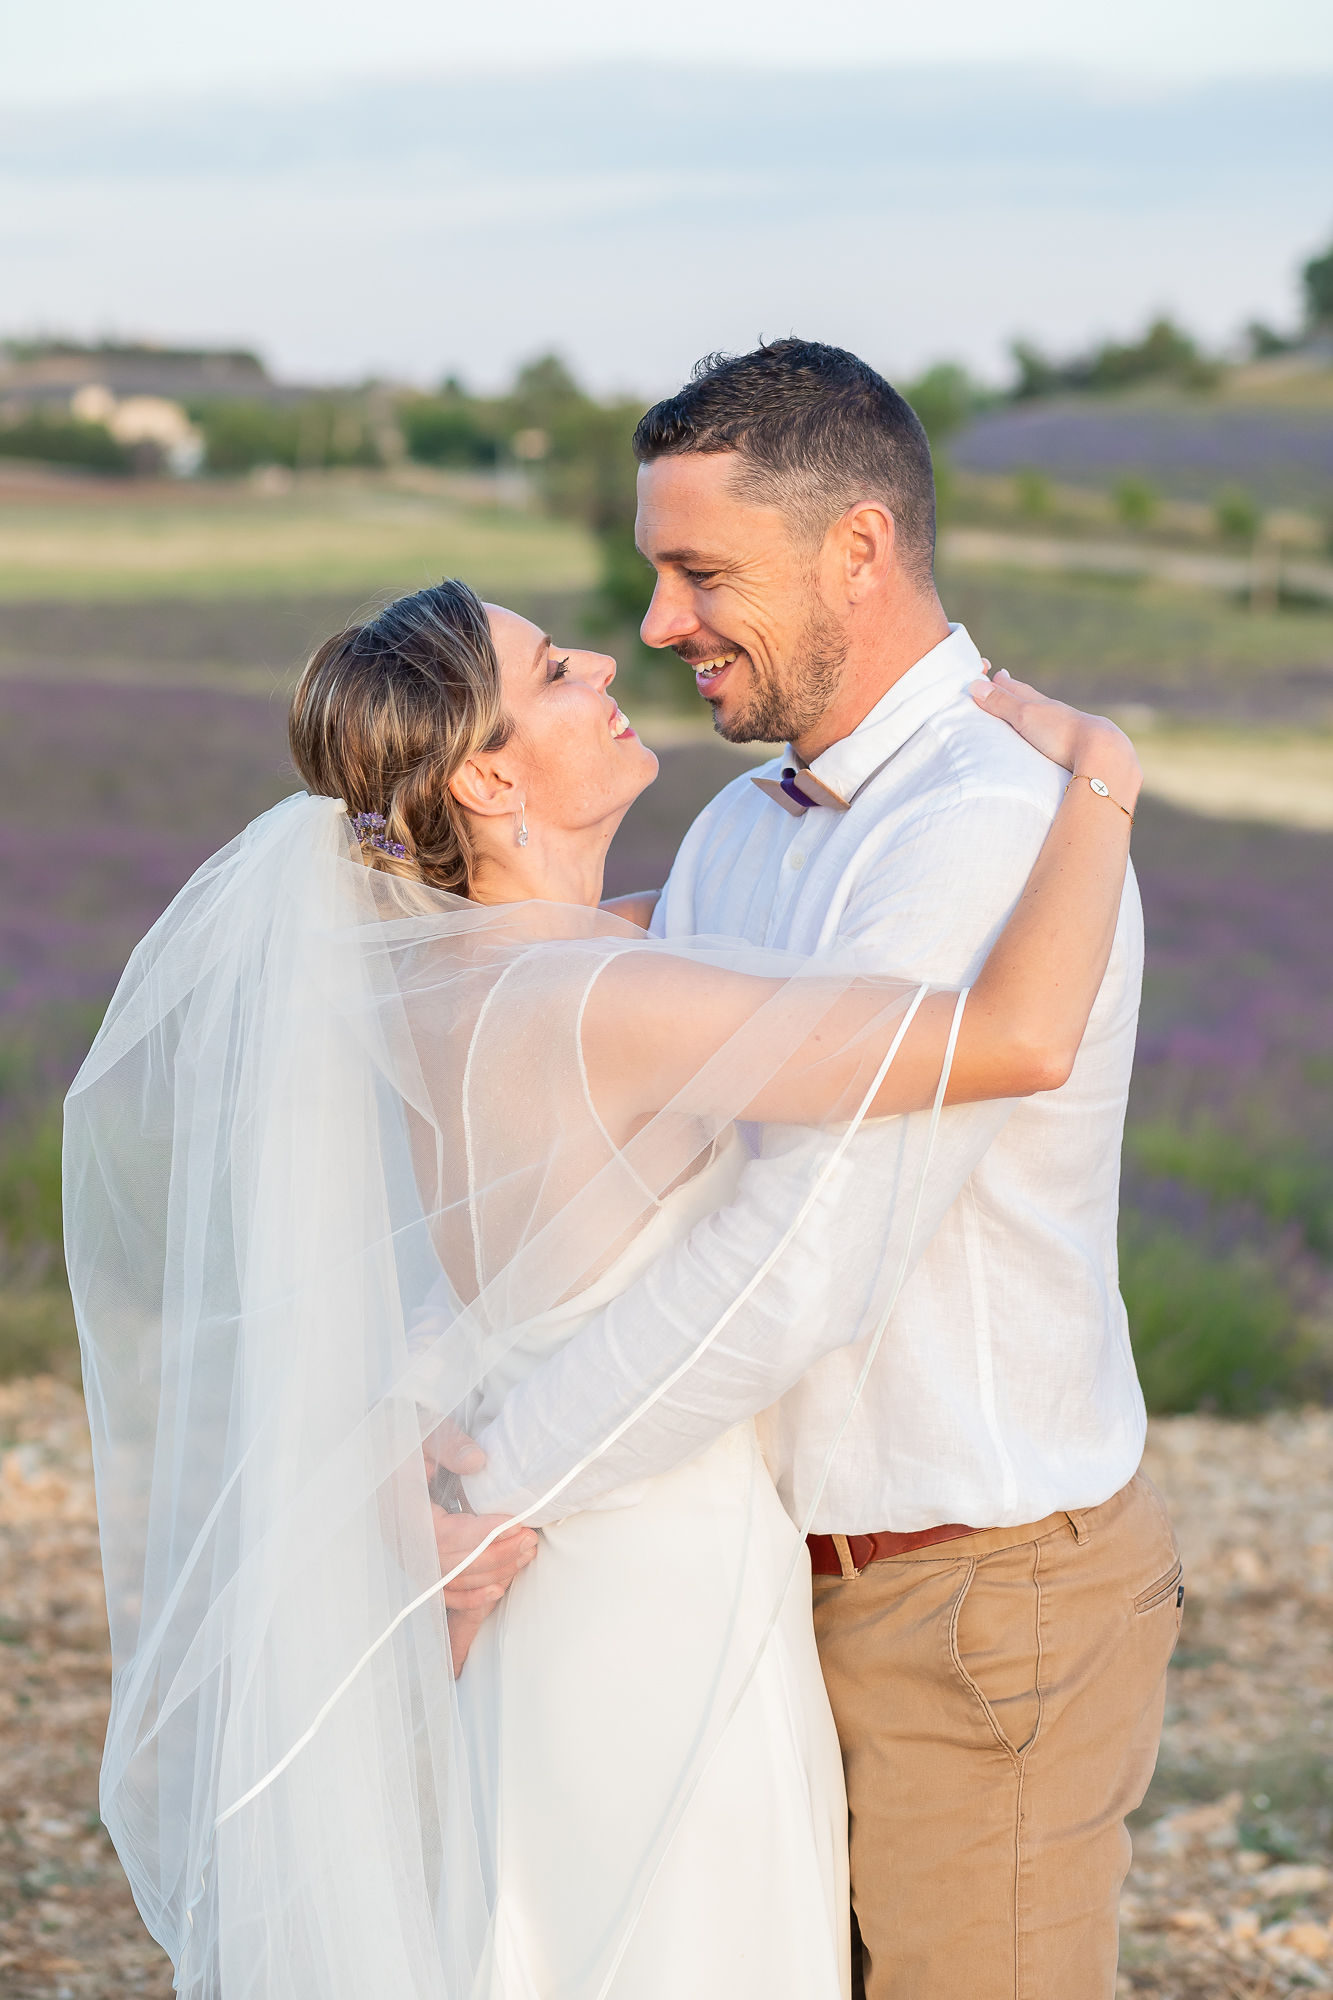 elopement in Provence romantic wedding in lavender fileds aria